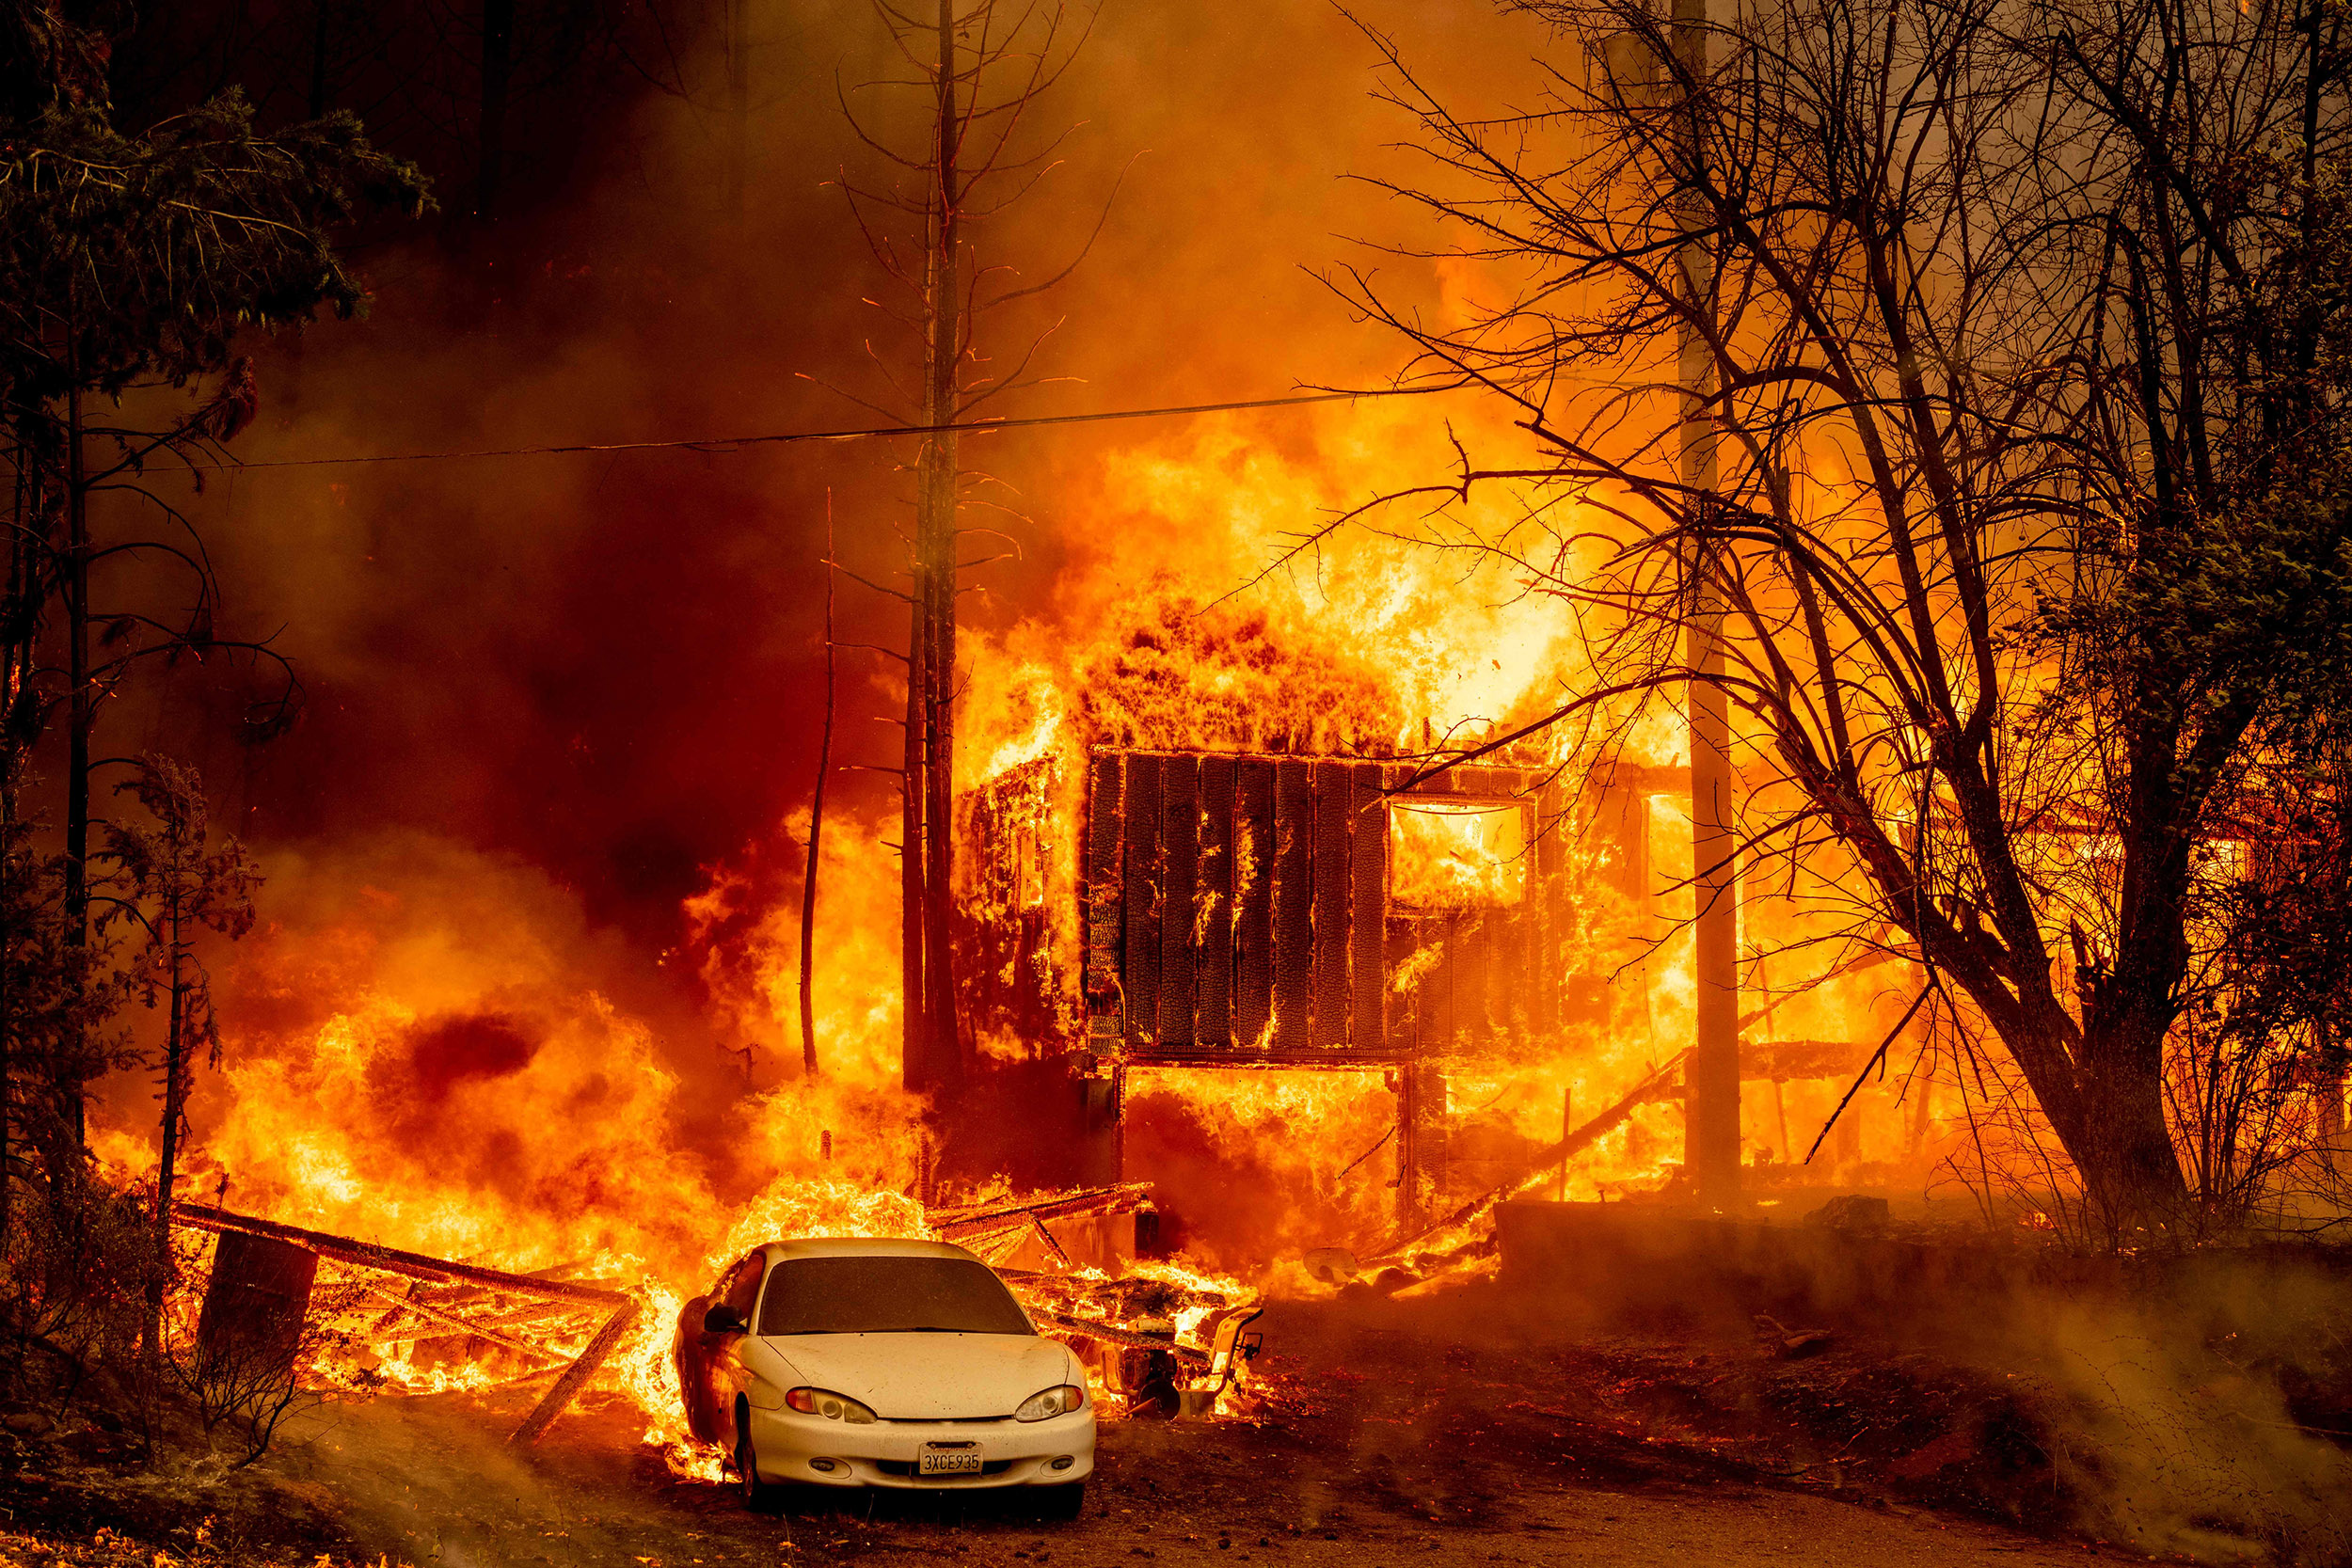 Numbness sets in for victims of Dixie Fire with homes lost and no way forward